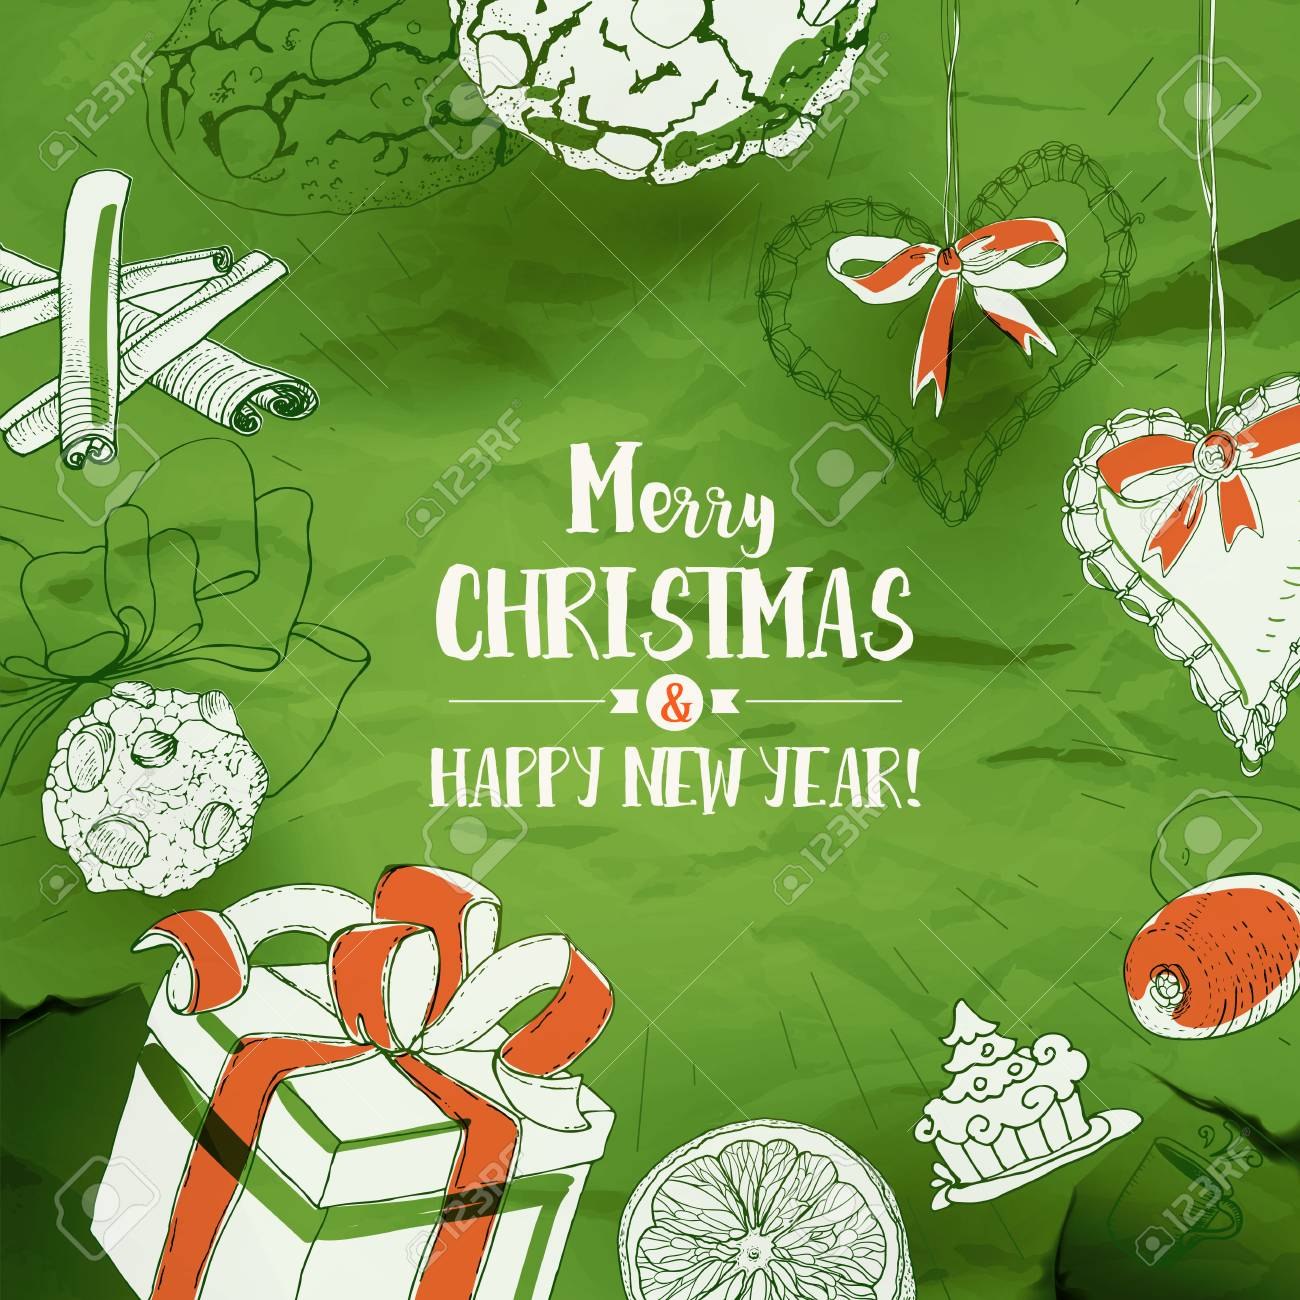 Christmas Card With Sketches And Typography Greetings On Green